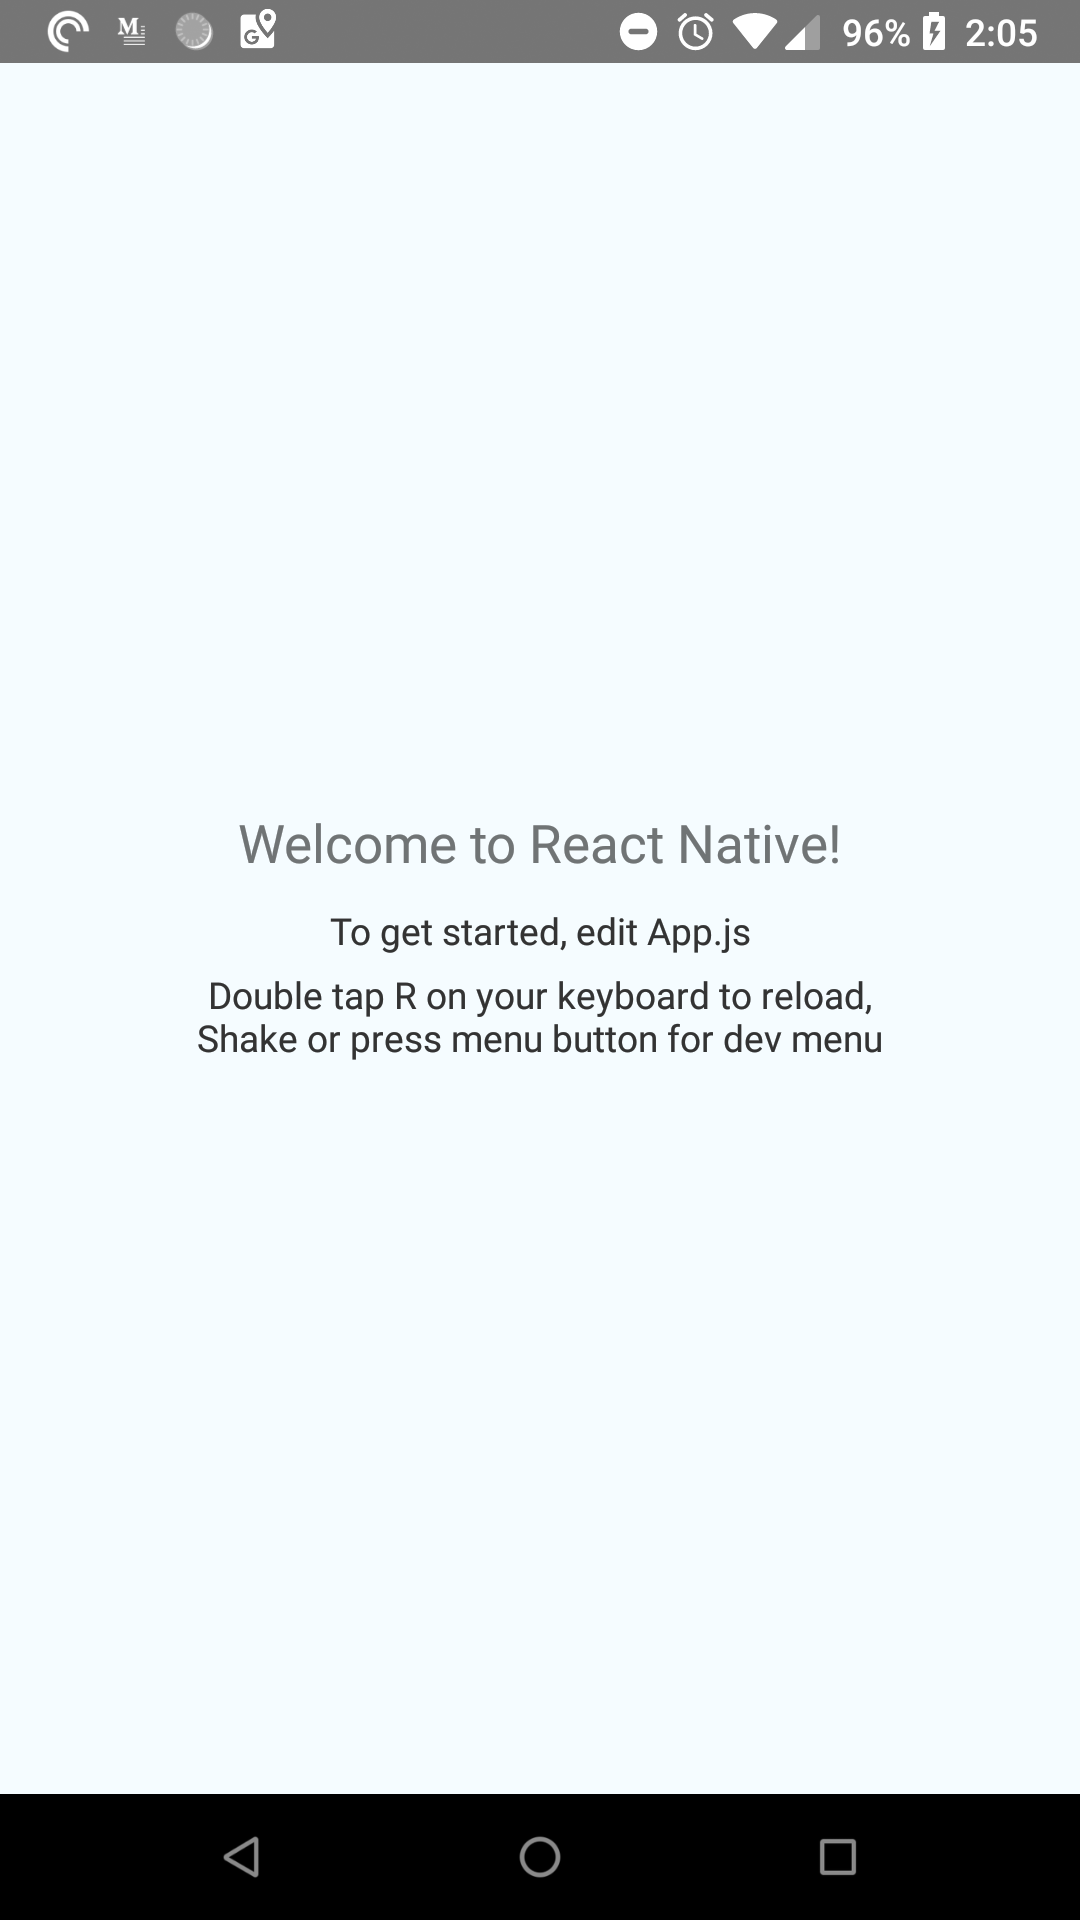 What a default React Native App looks like